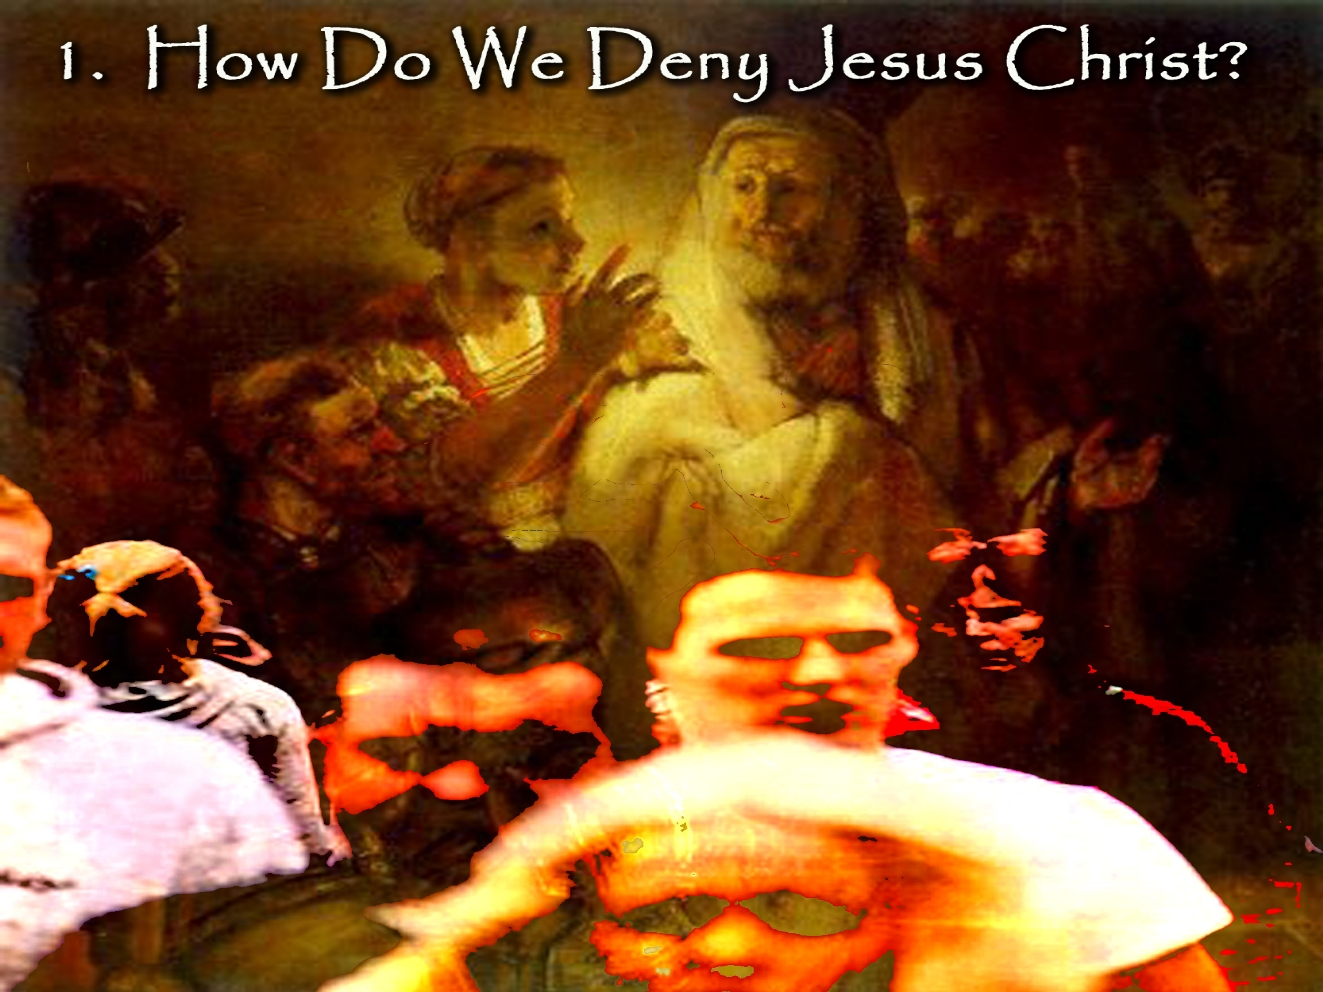 How Do We Deny Christ